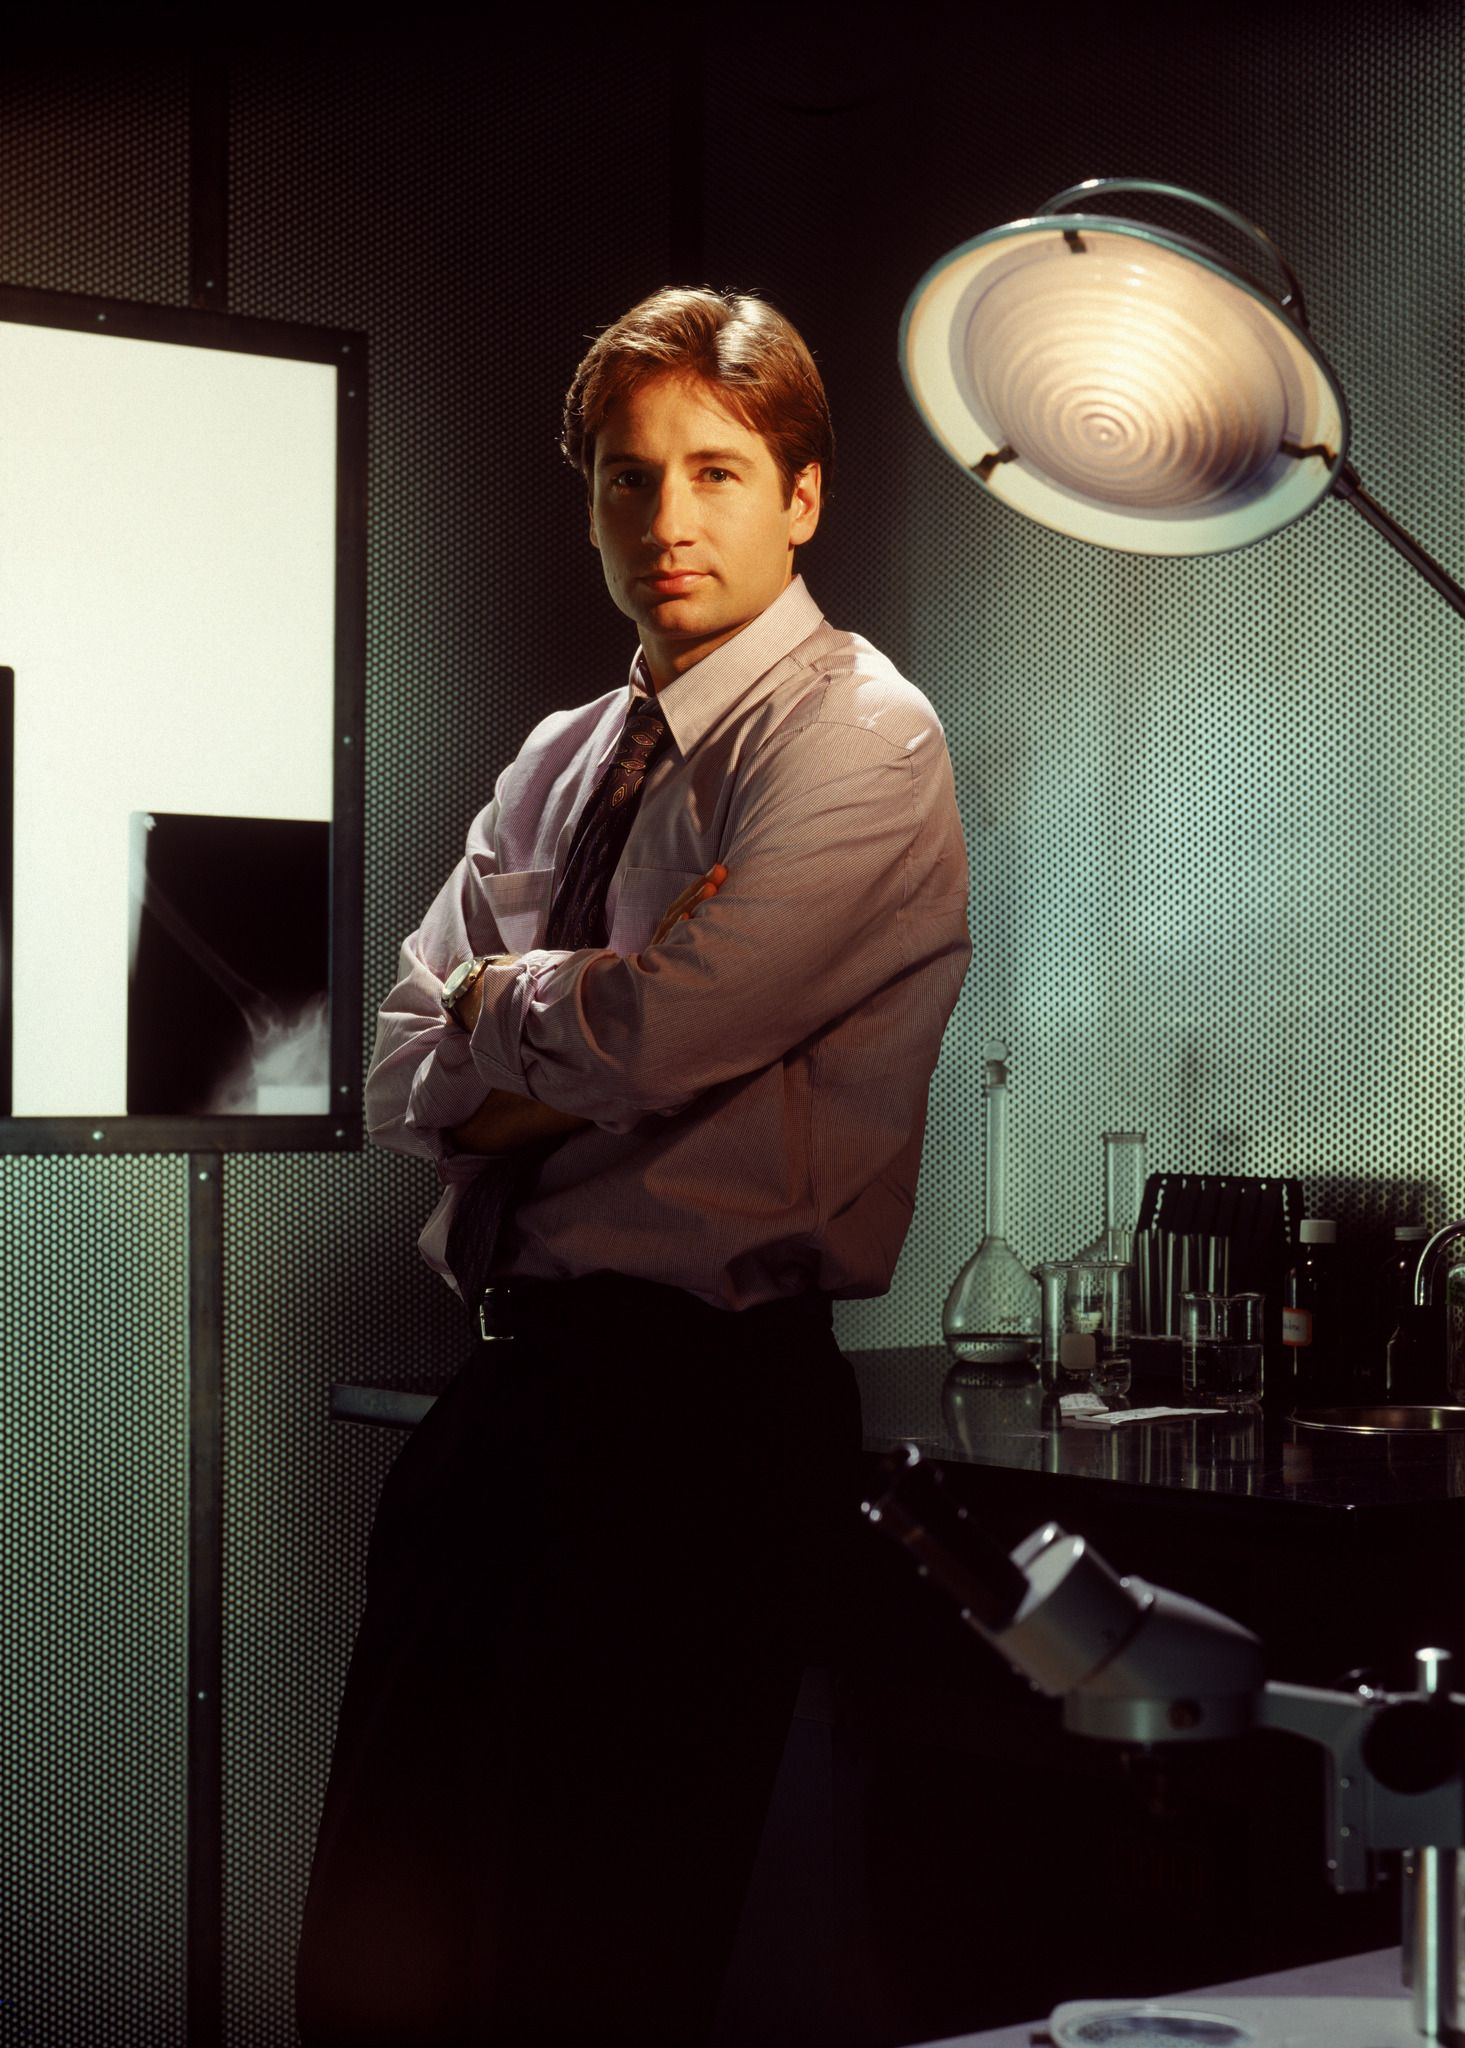 My first total crush on a TV character was Fox Mulder from The X Files. Ohhh I had it bad! He can kick down my door and yell FBI anytime :)